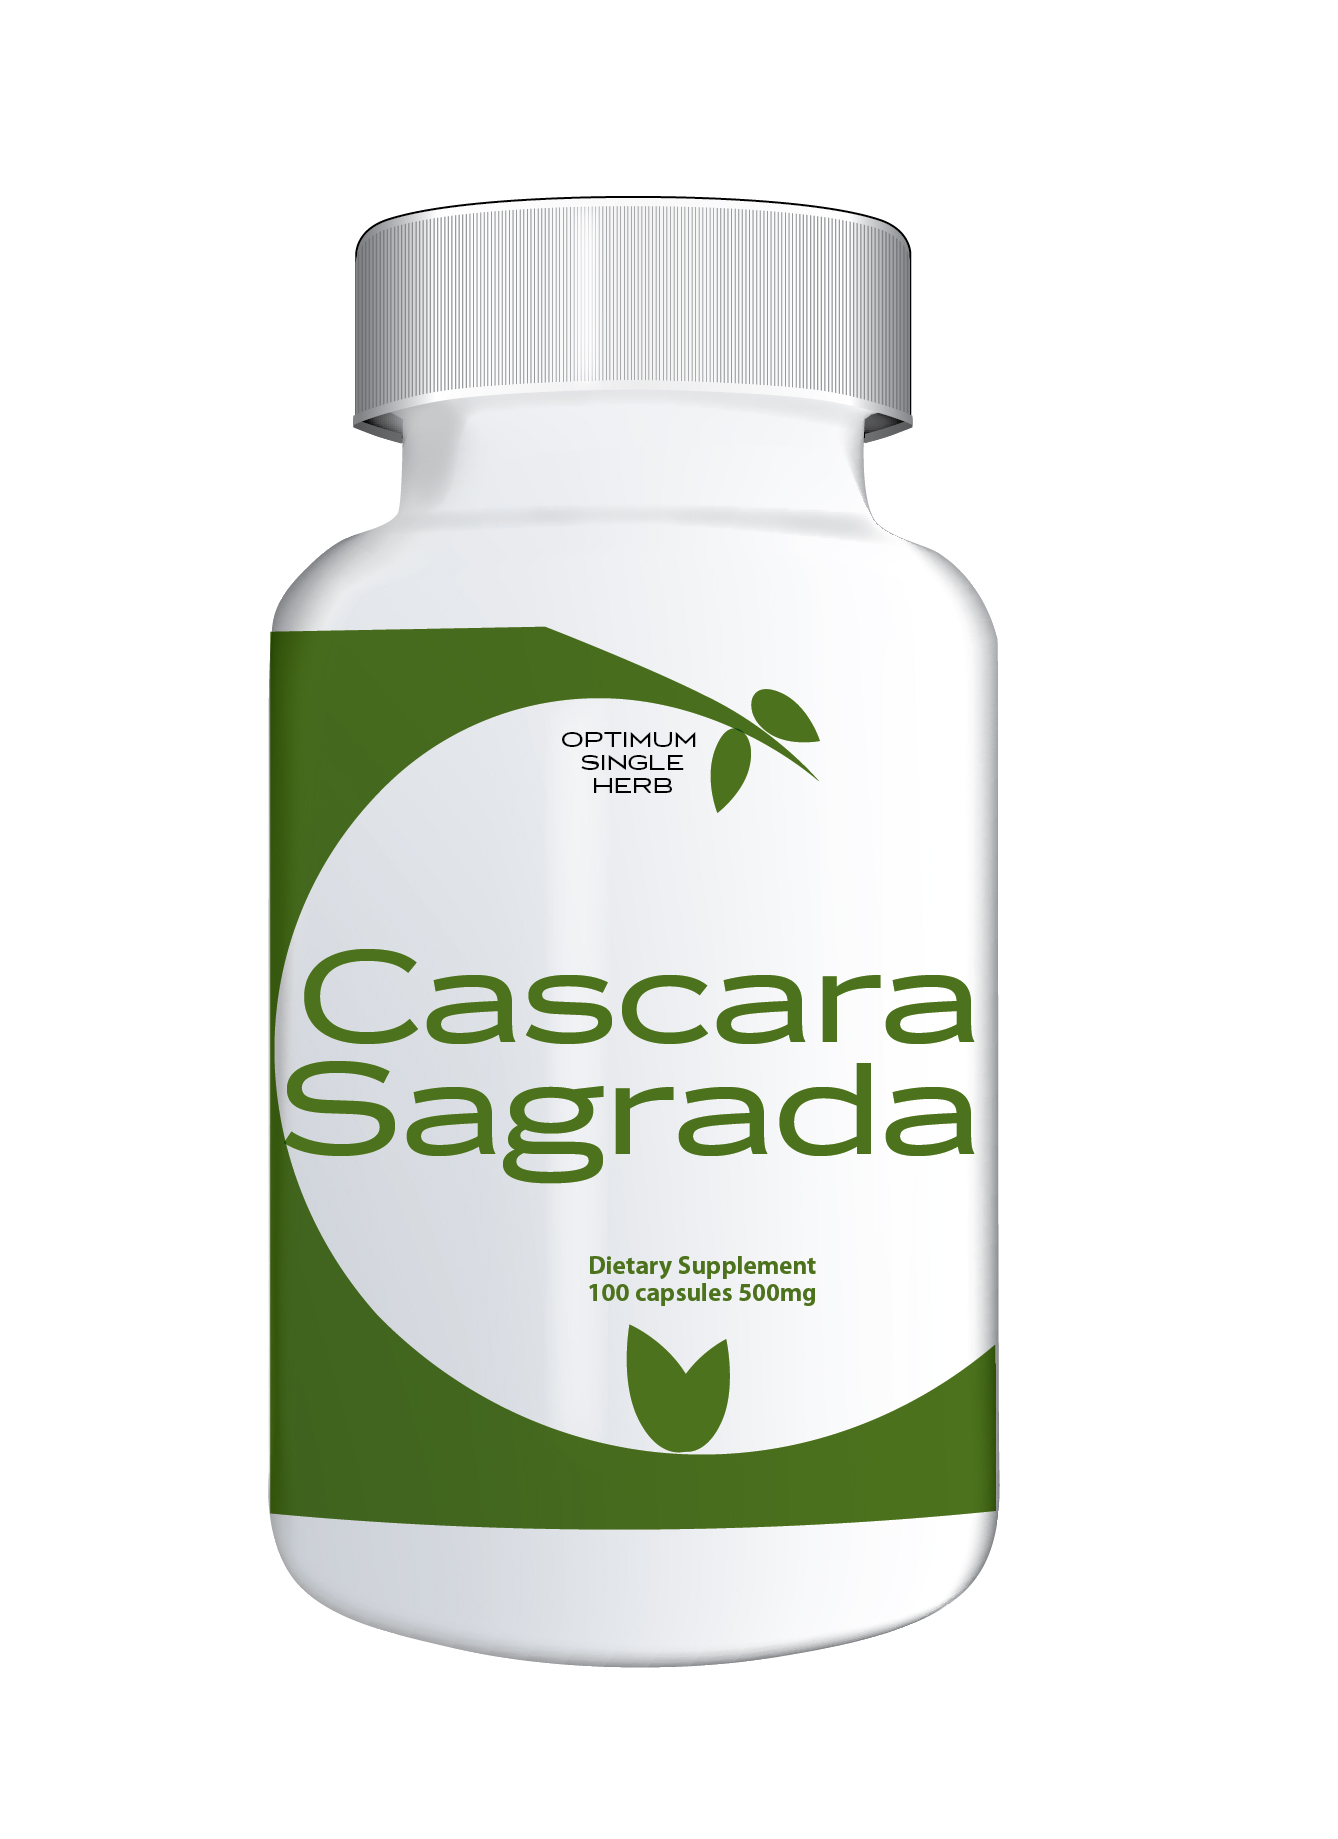 Cascara Sagrada 100 capsules 500mg